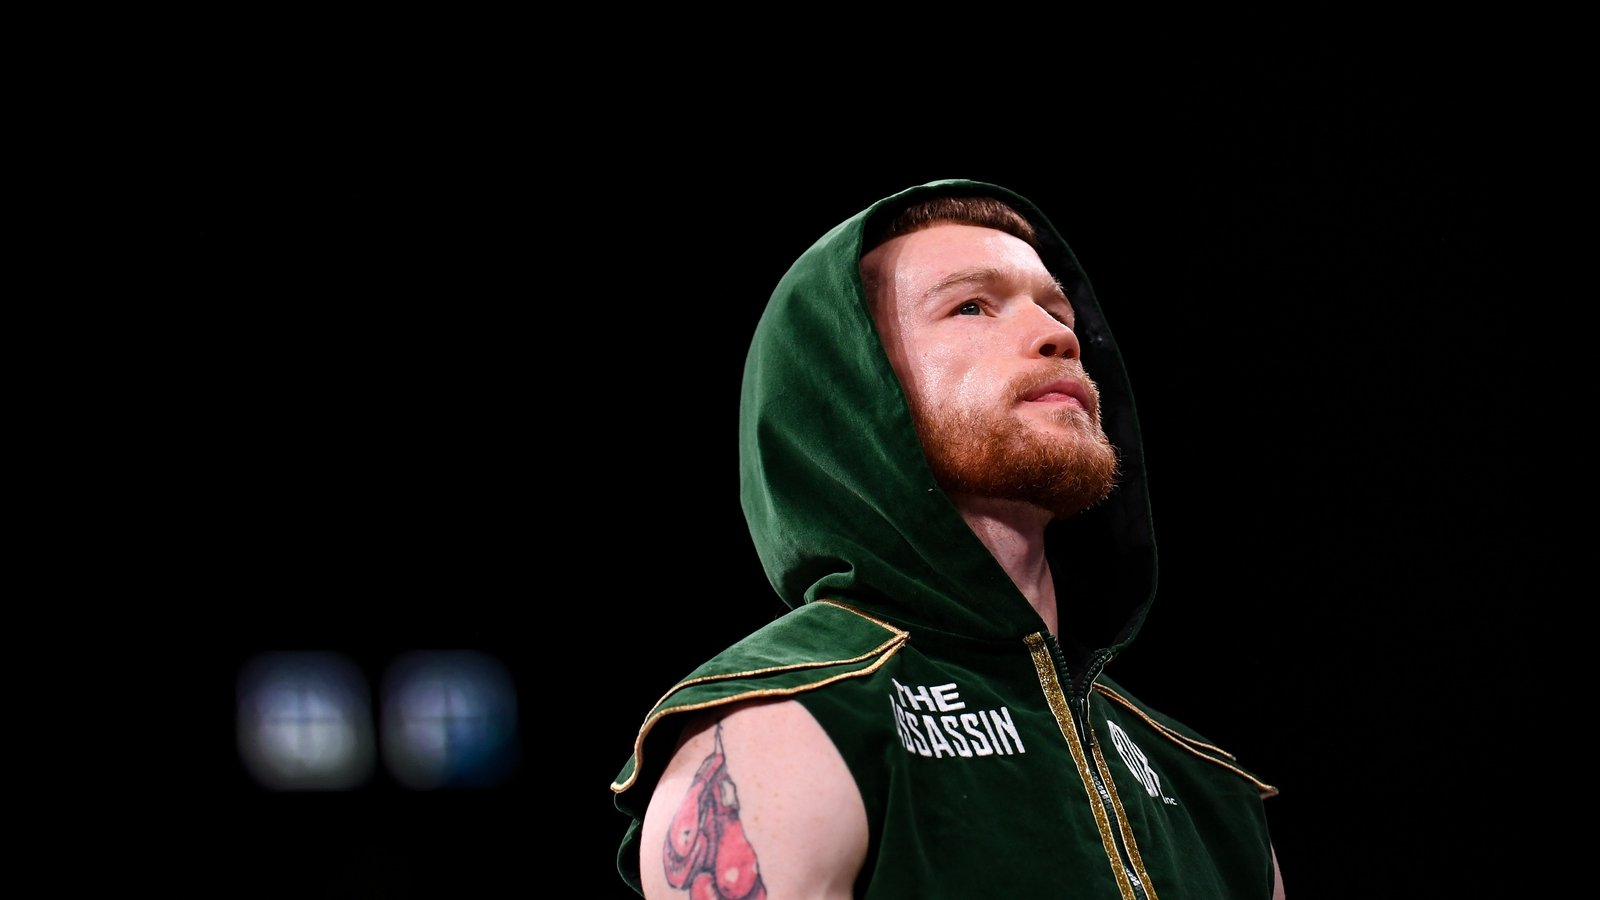 Tennyson to fight Staffon for IBO world title in May